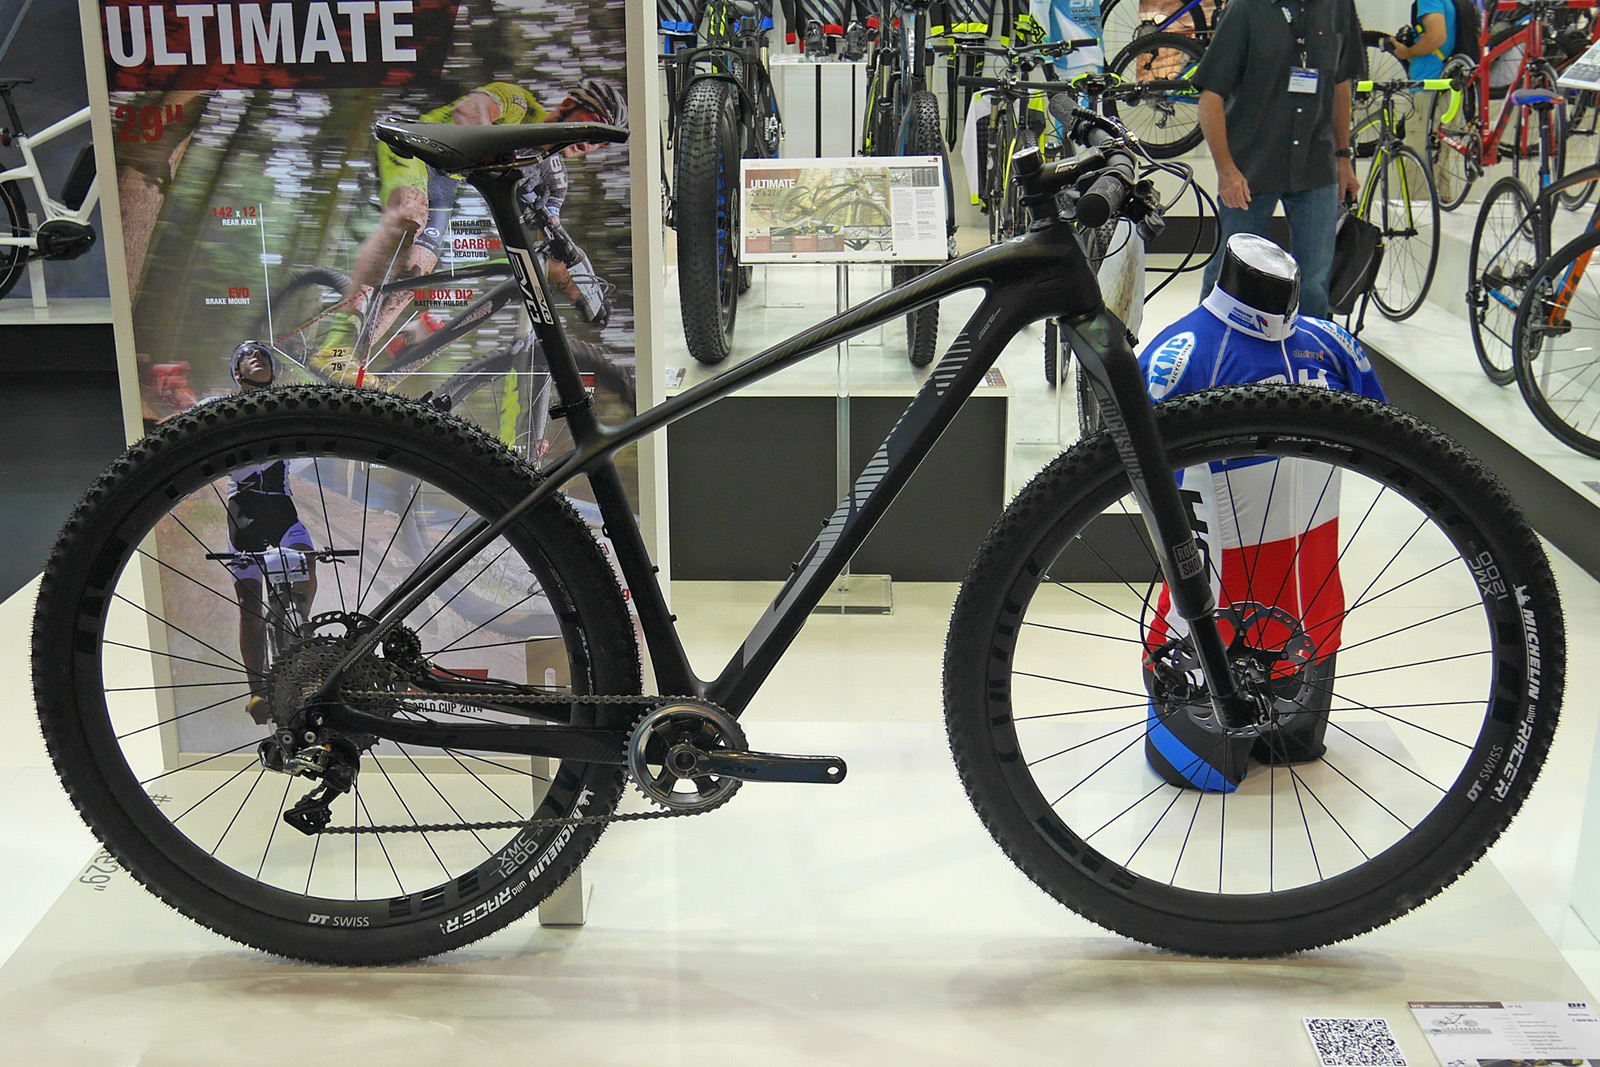 EB15: BH Walks Us Through their new Ultimate Hardtails and G7 Disc ...